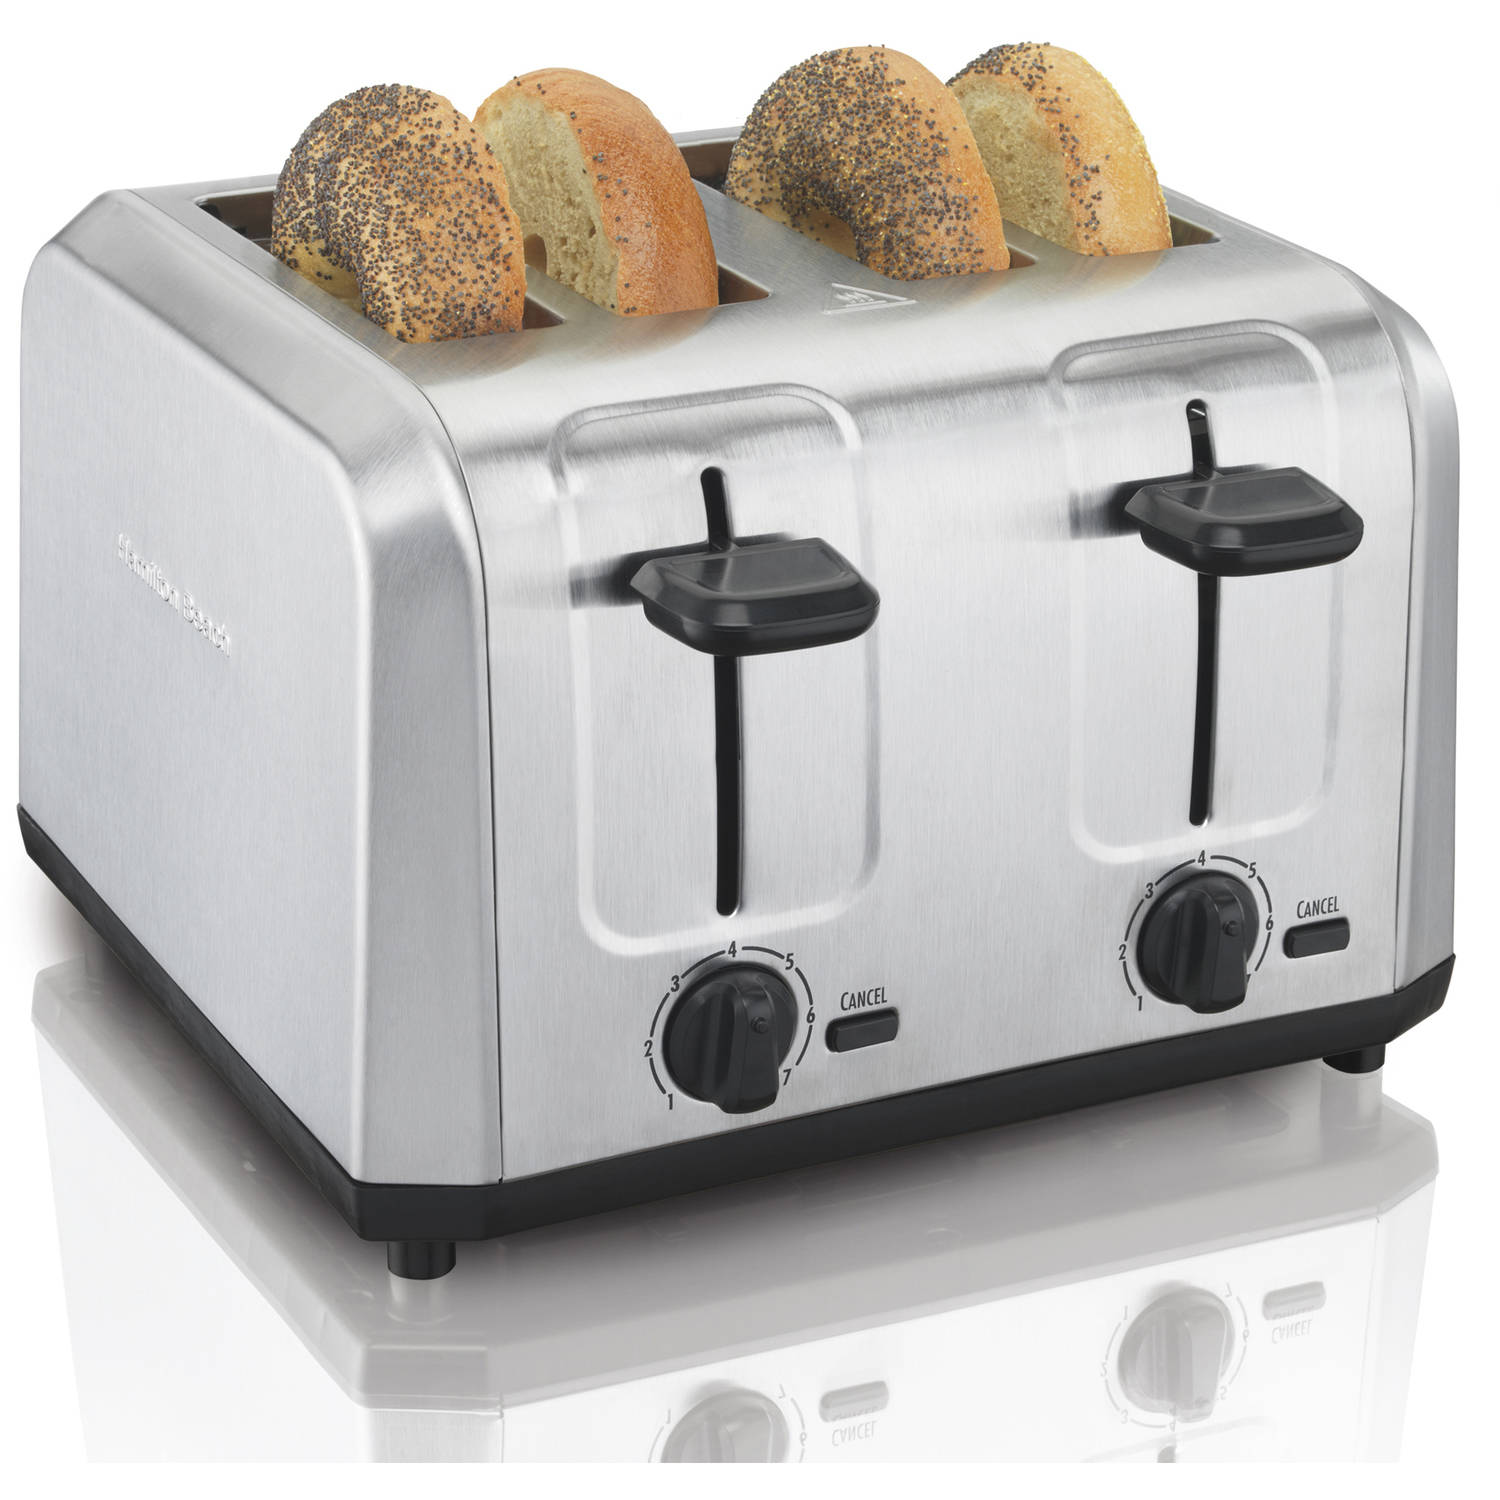 Hamilton Beach Brushed Stainless Steel Toaster | Model# 24910